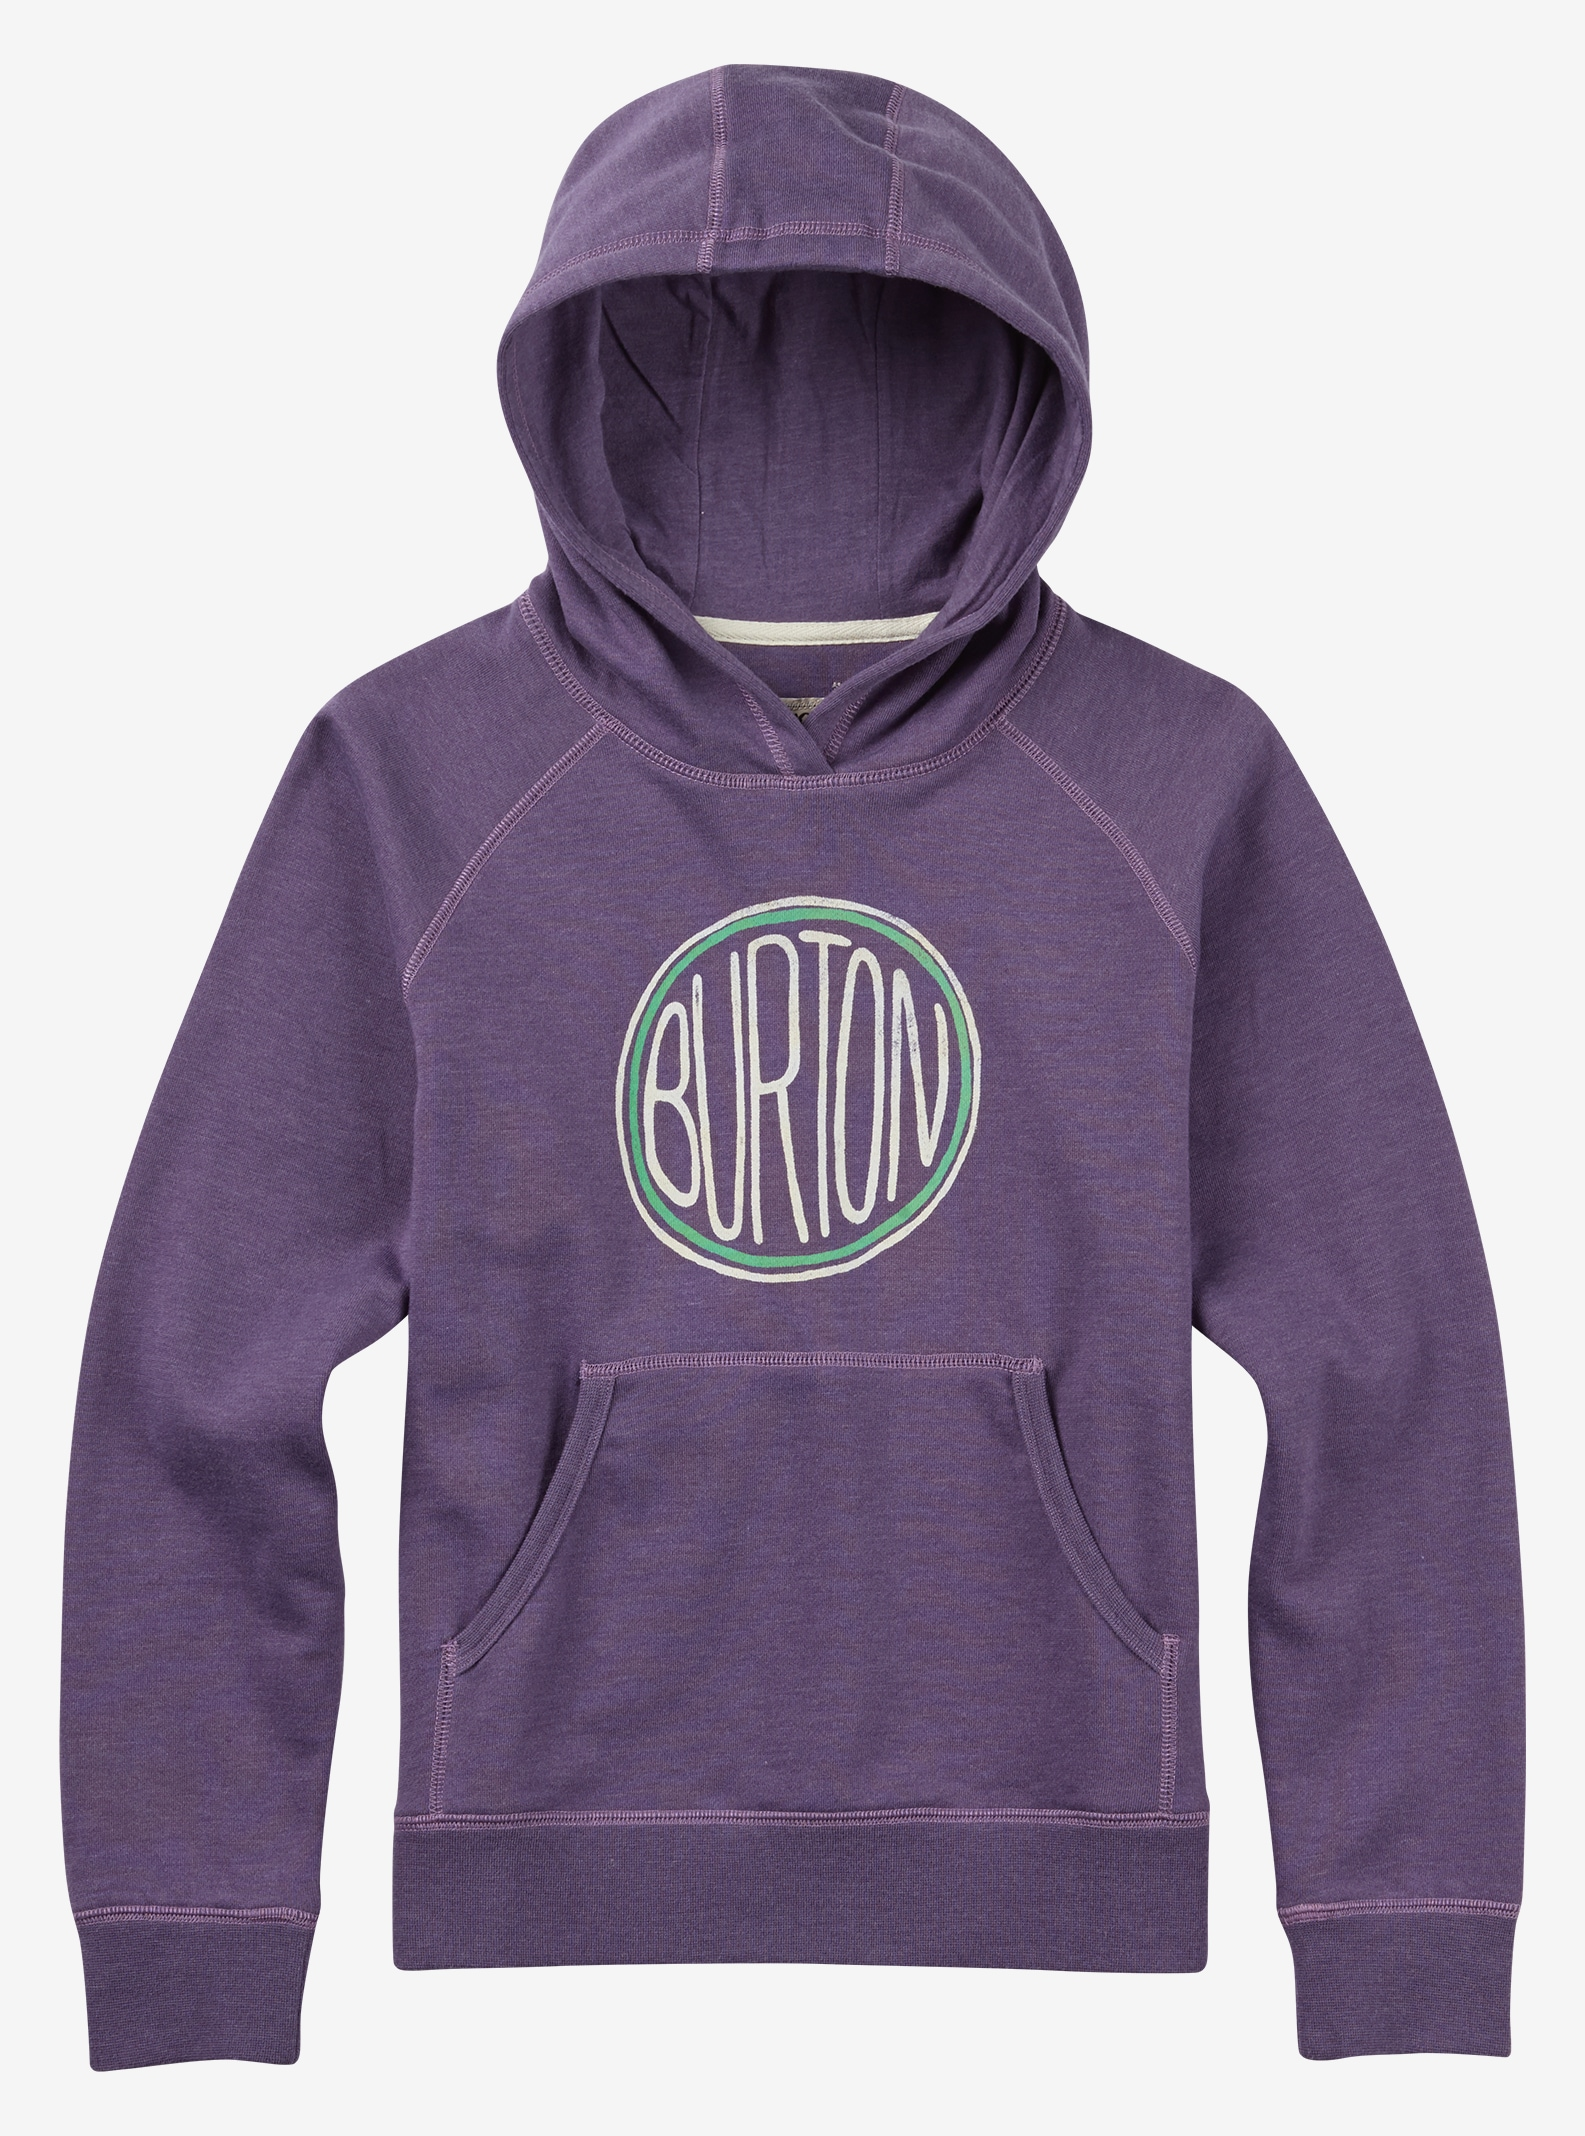 Burton Girls' Prudence Pullover shown in Mulled Grape Heather